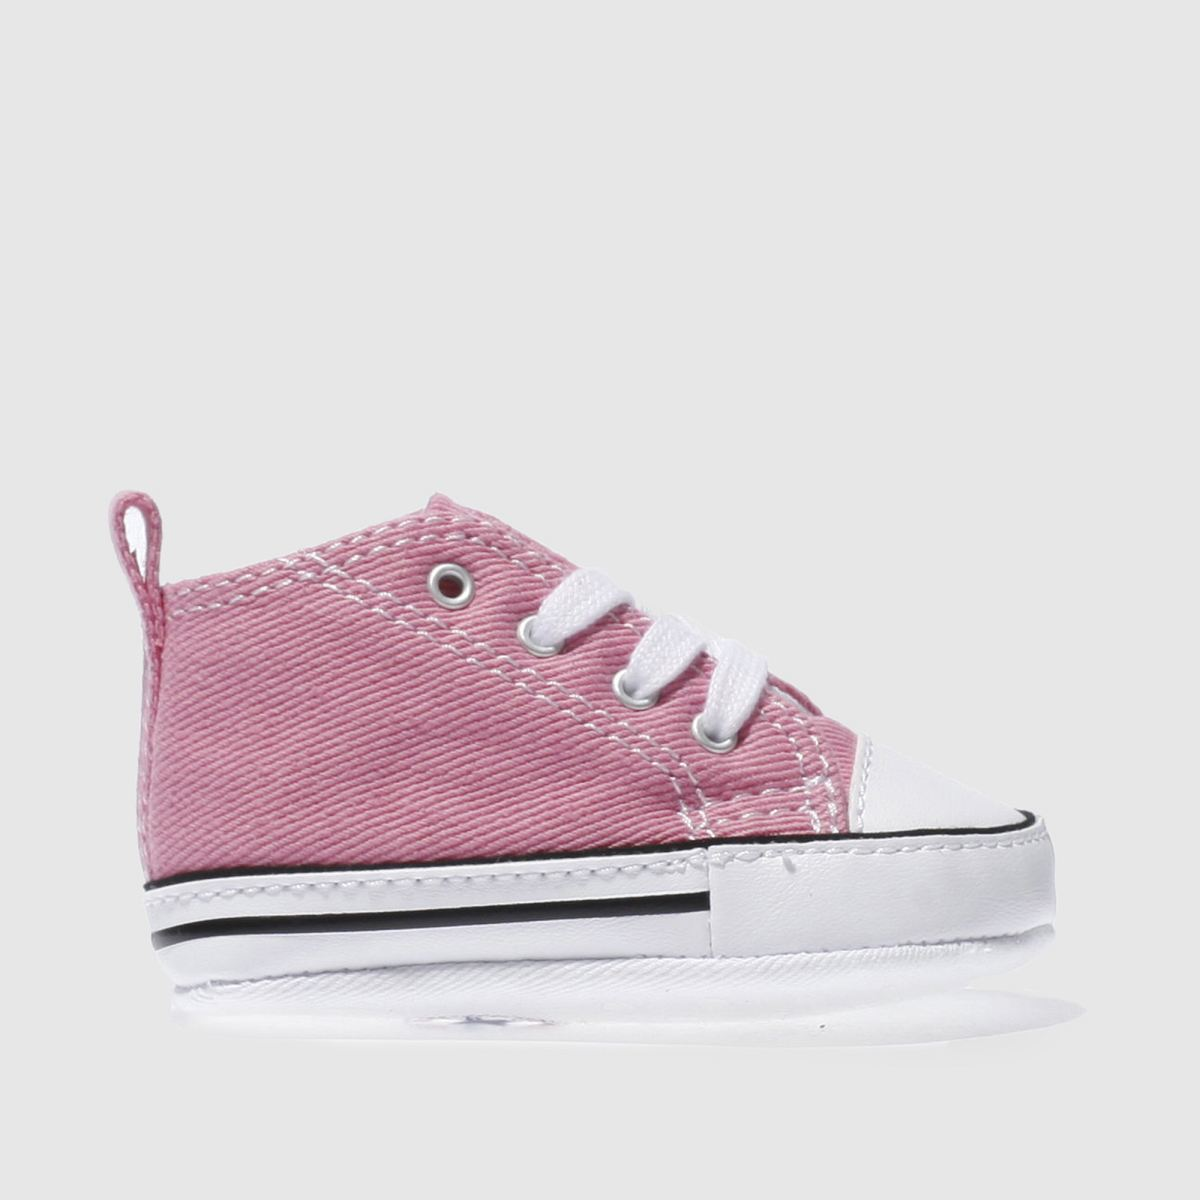 Converse Pink 1st Star Crib Shoes Baby